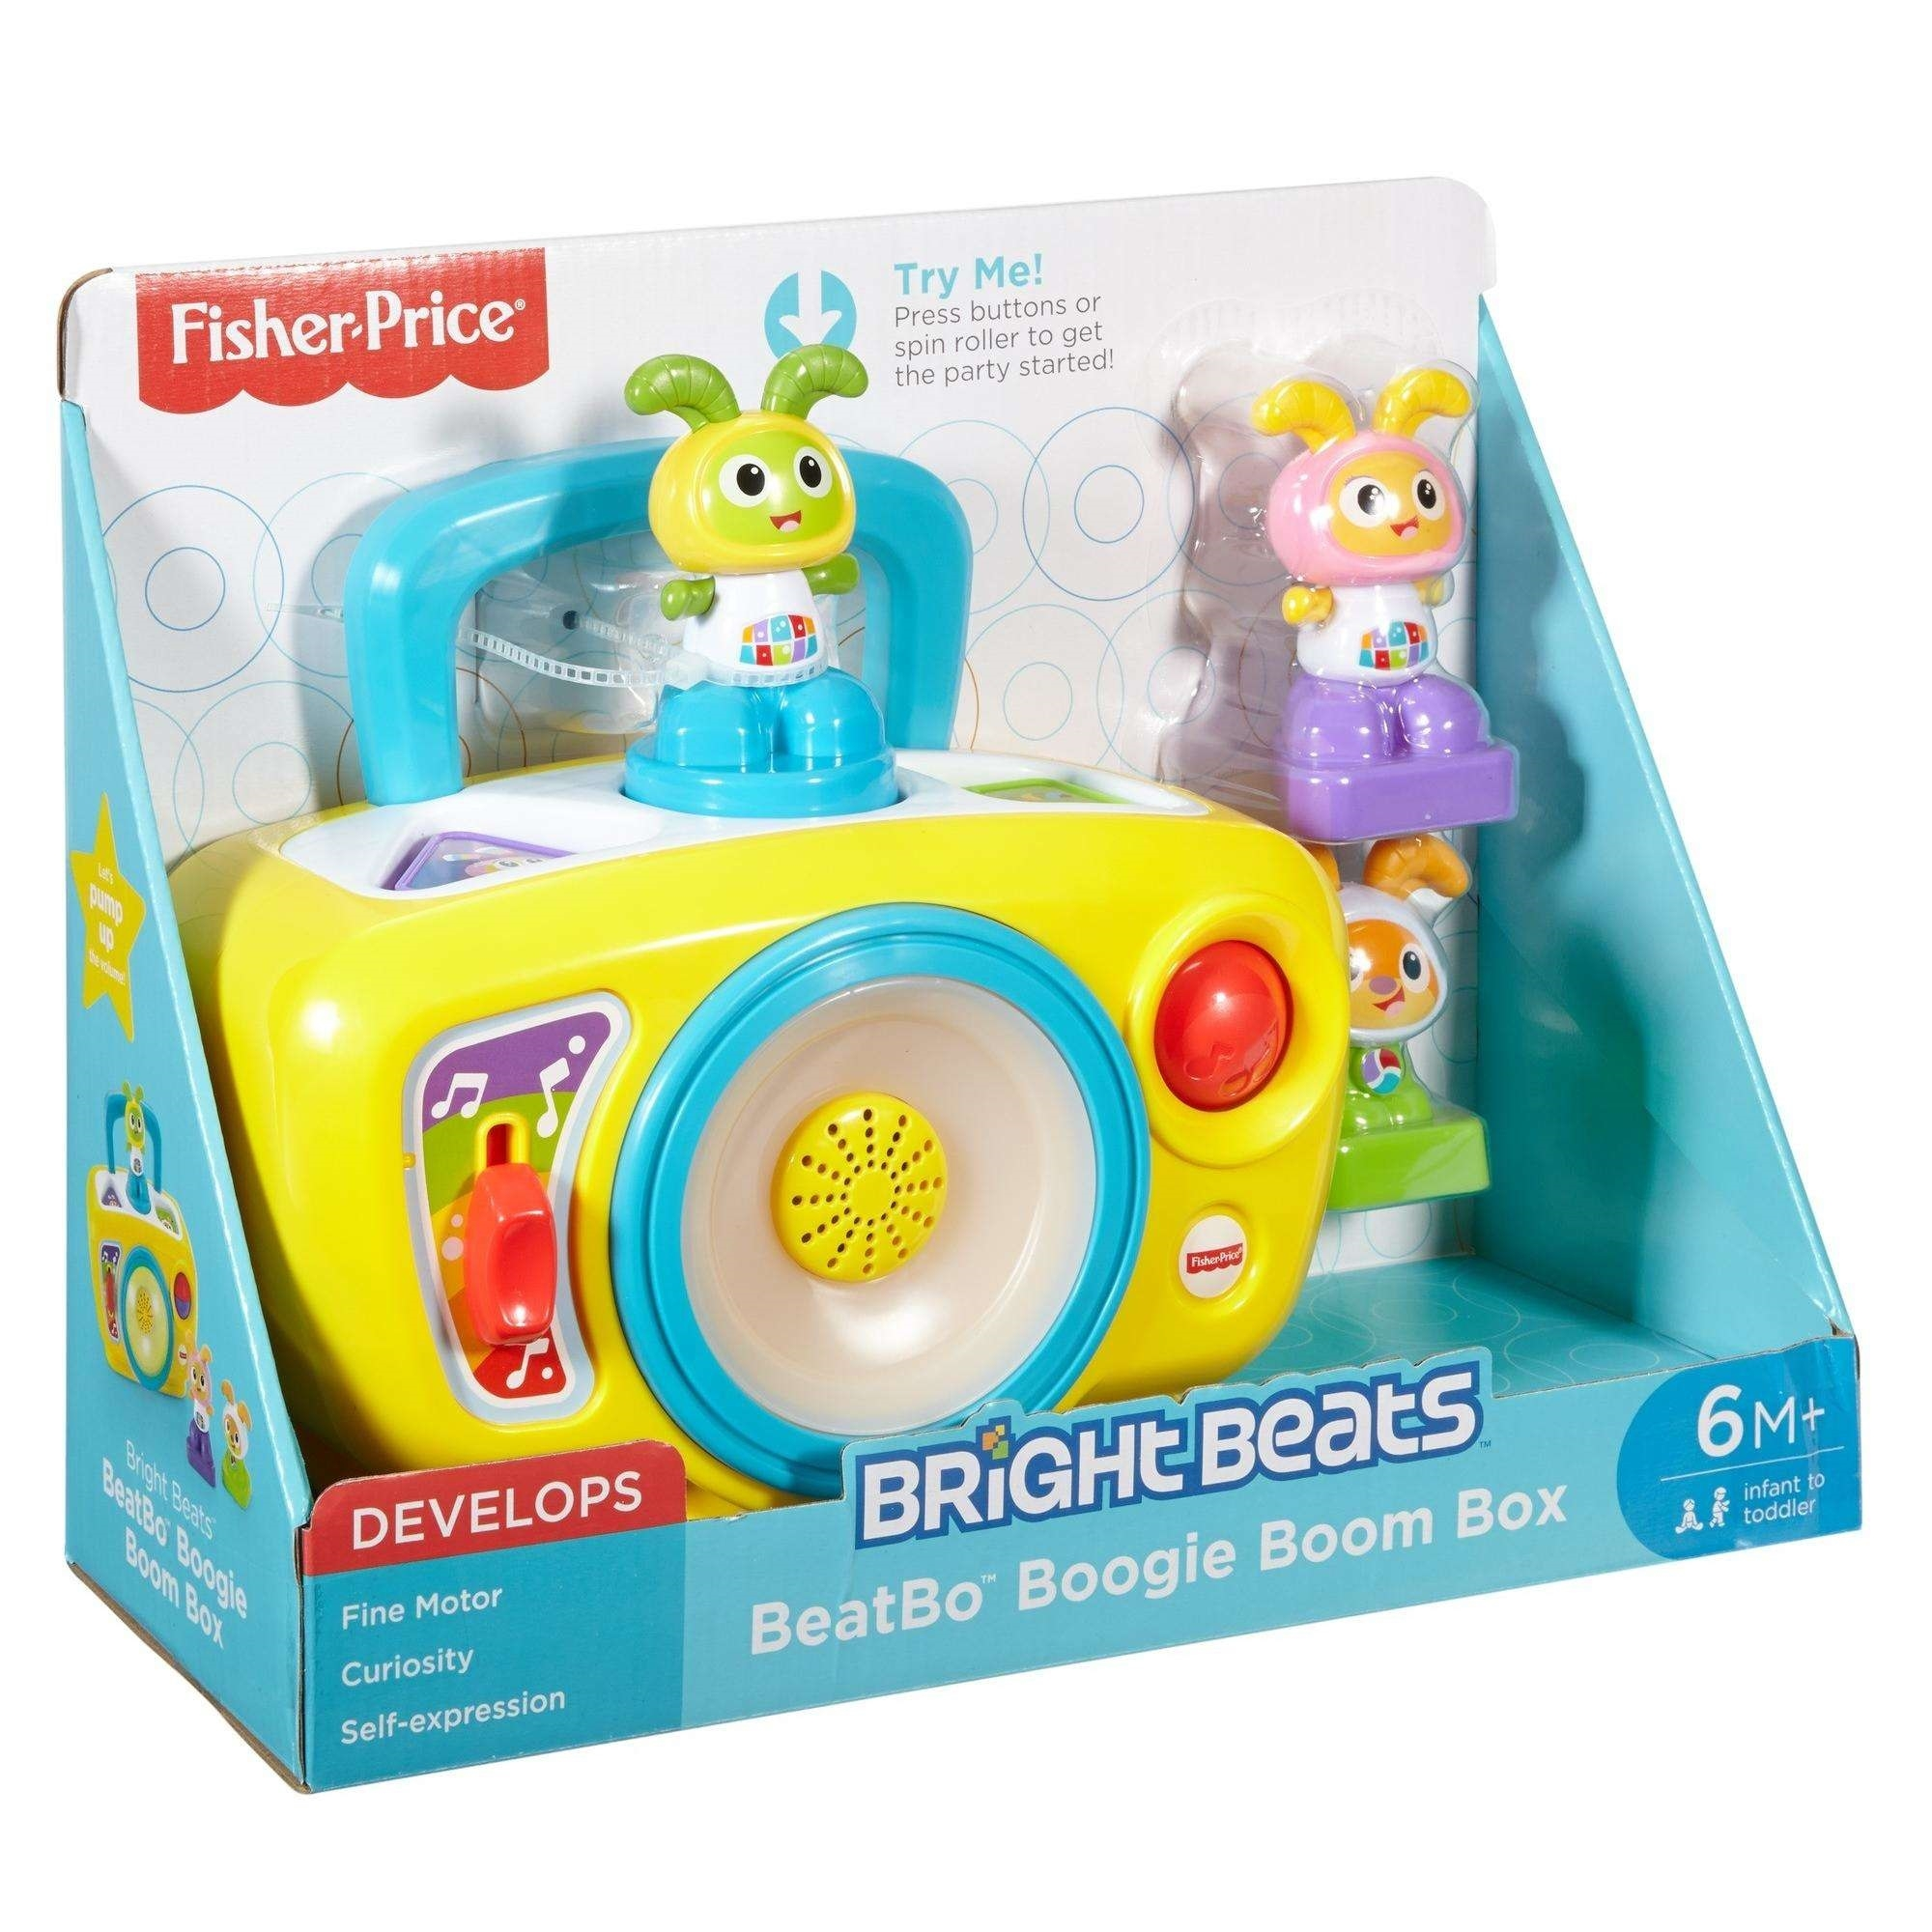 Fisher Price BeatBo Boogie Boom Box 6 Months